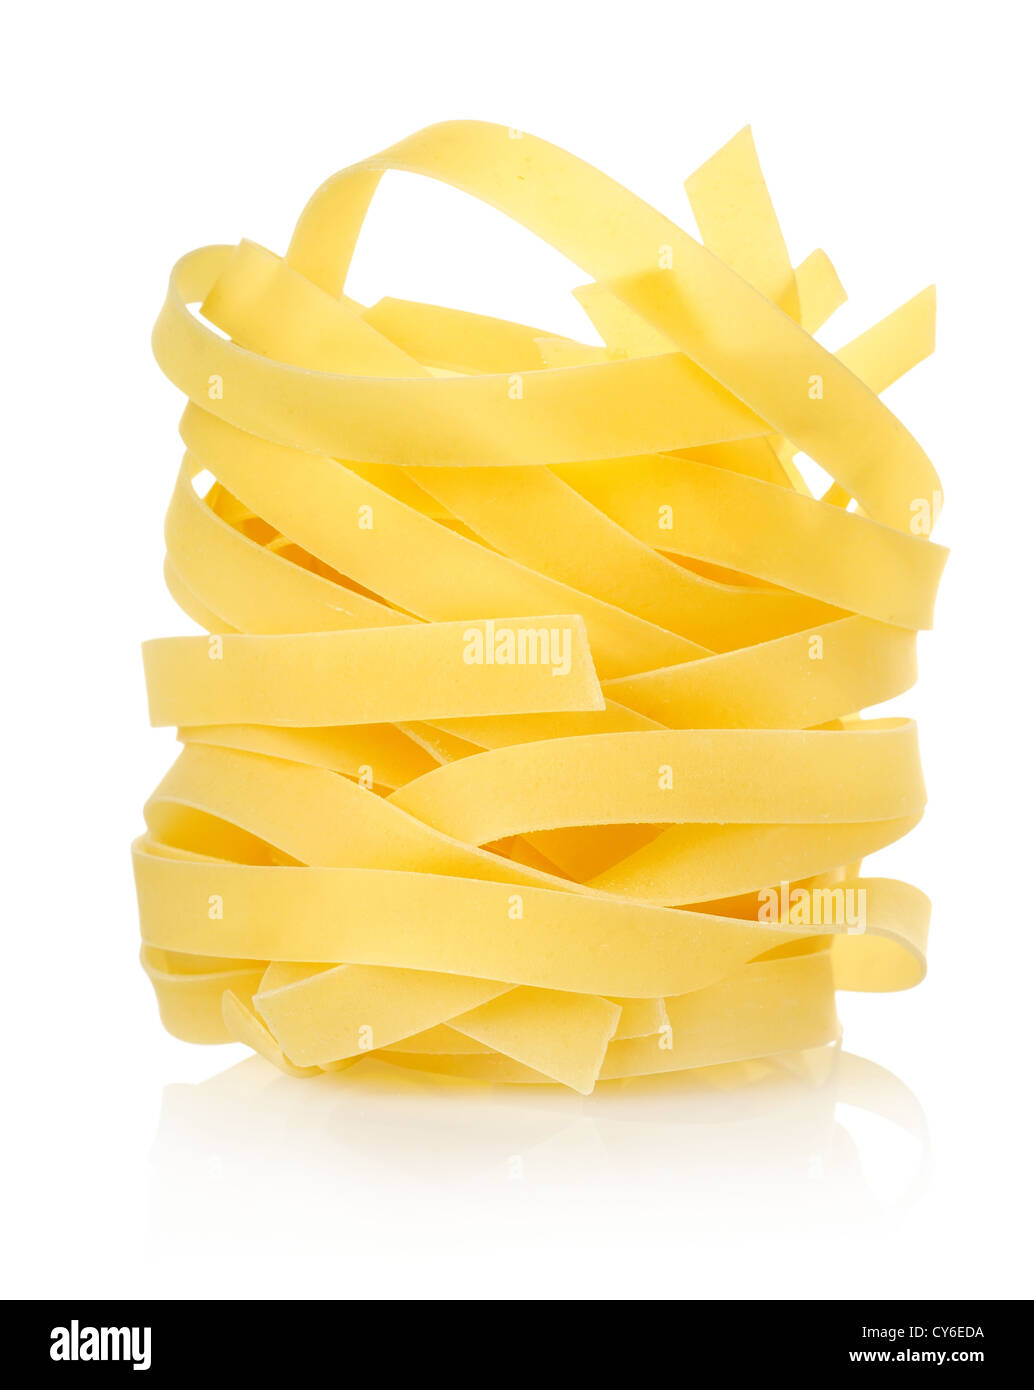 Pasta tagliatelle isolated on a white background - Stock Image